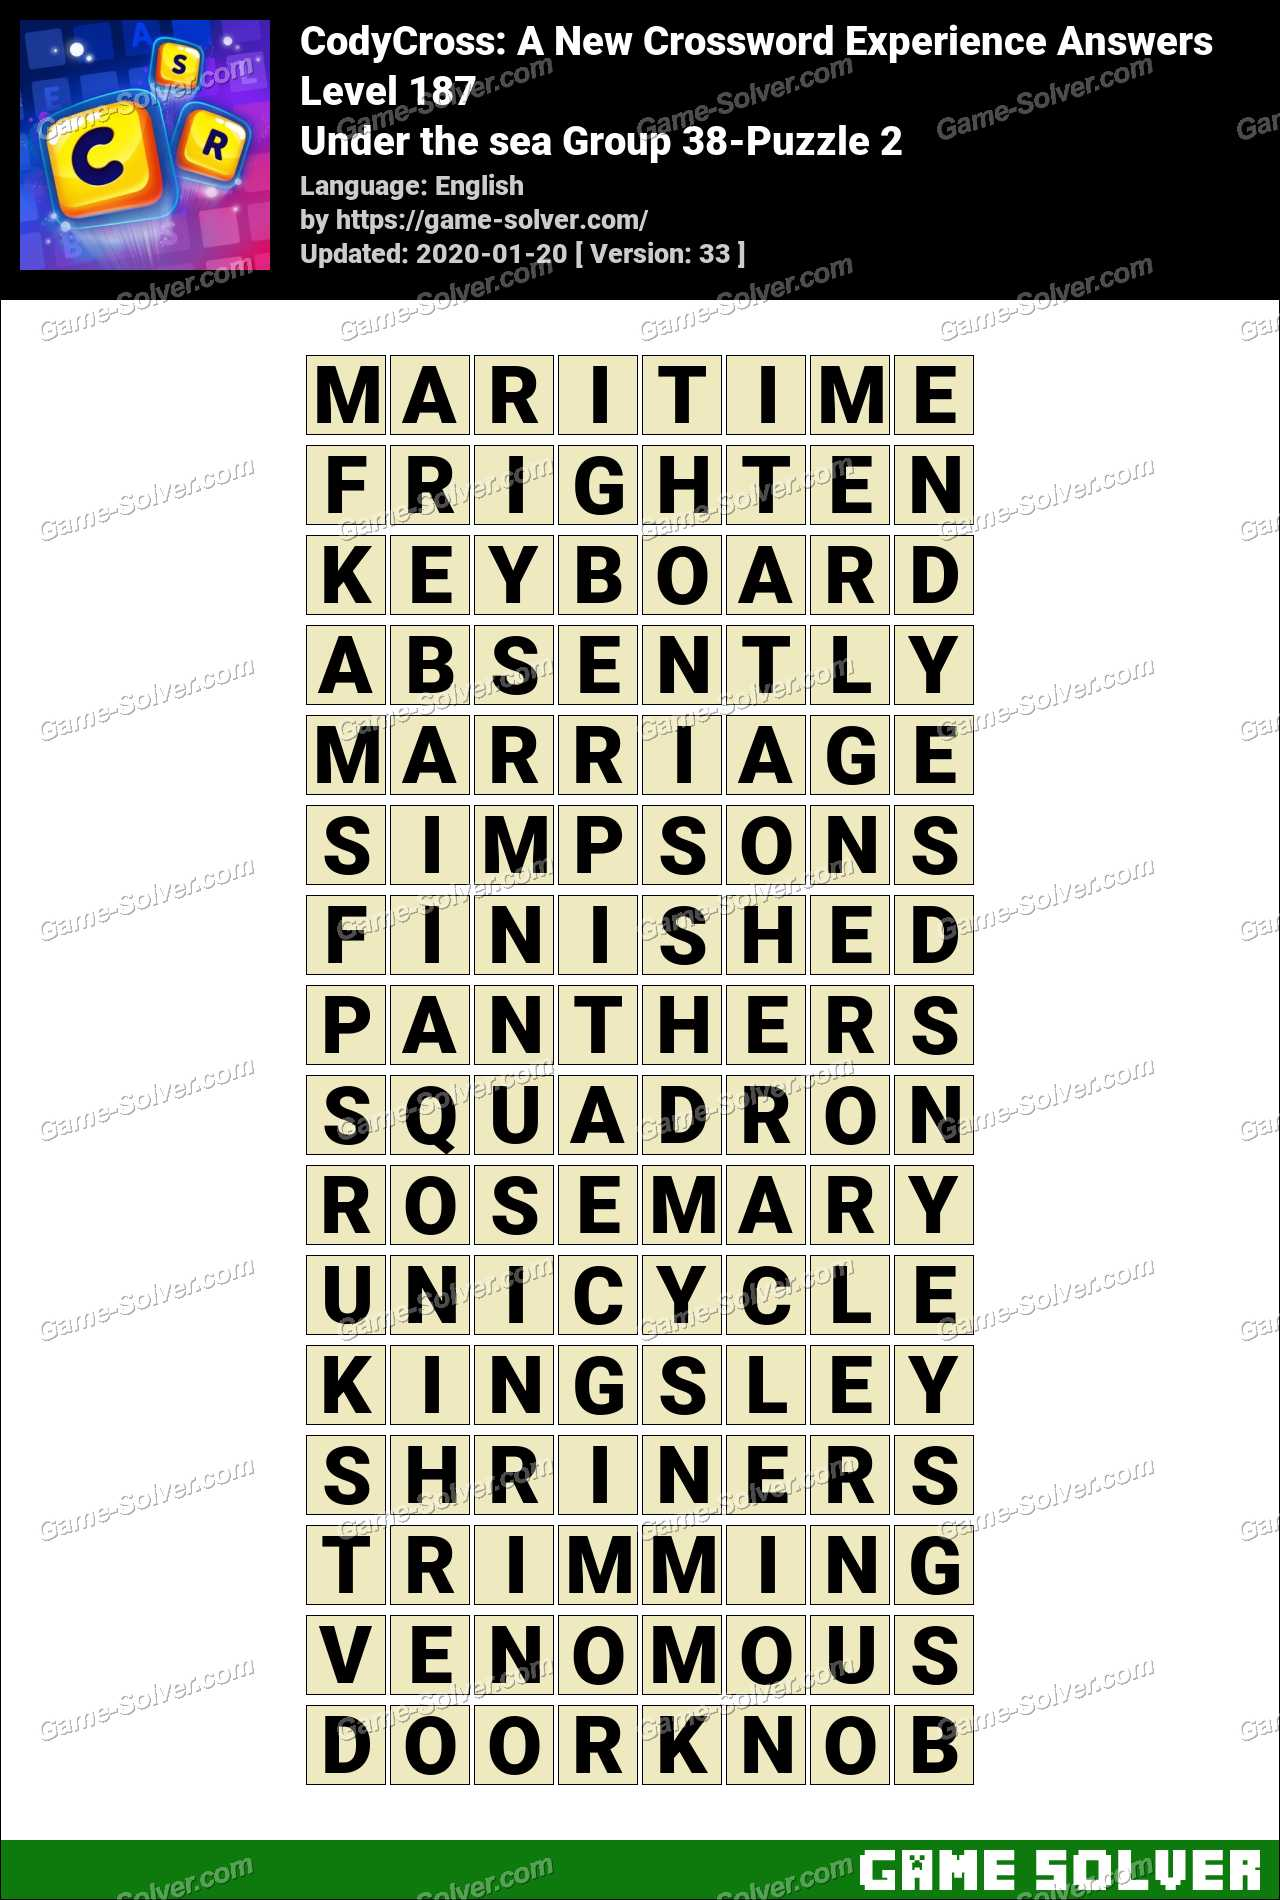 CodyCross Under the sea Group 38-Puzzle 2 Answers